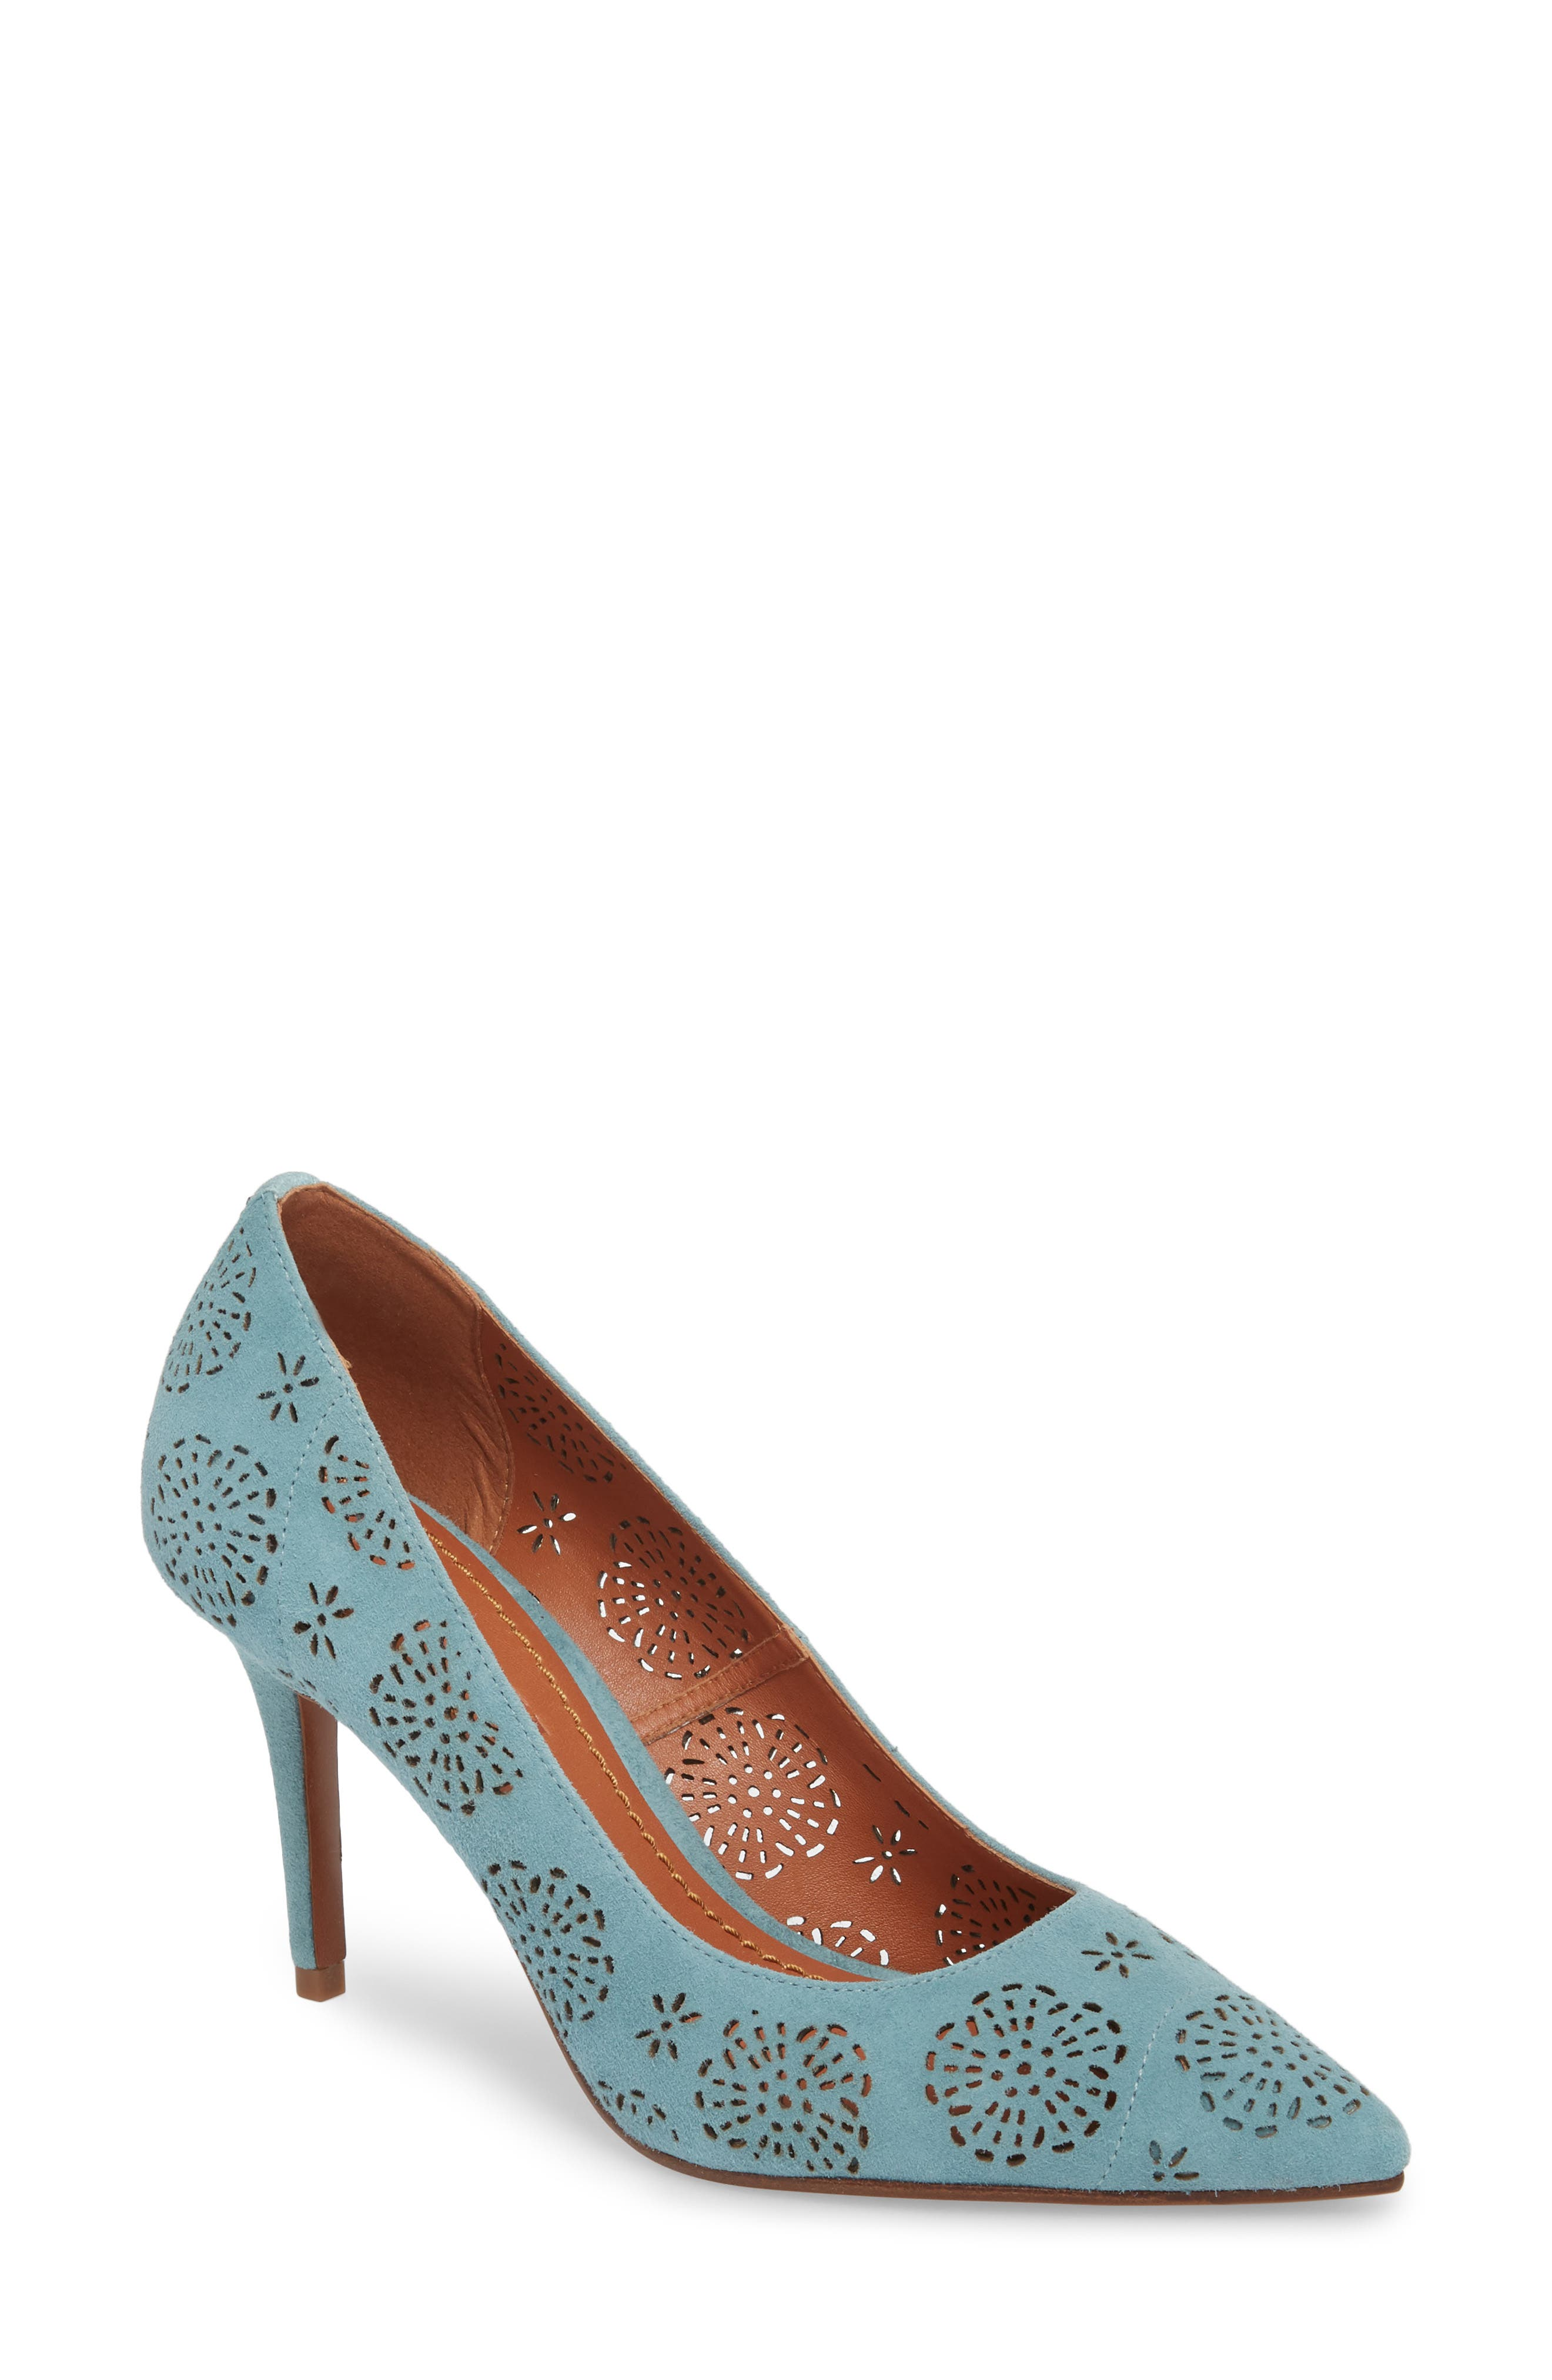 COACH Waverly Tea Rose Perforated Pump (Women)